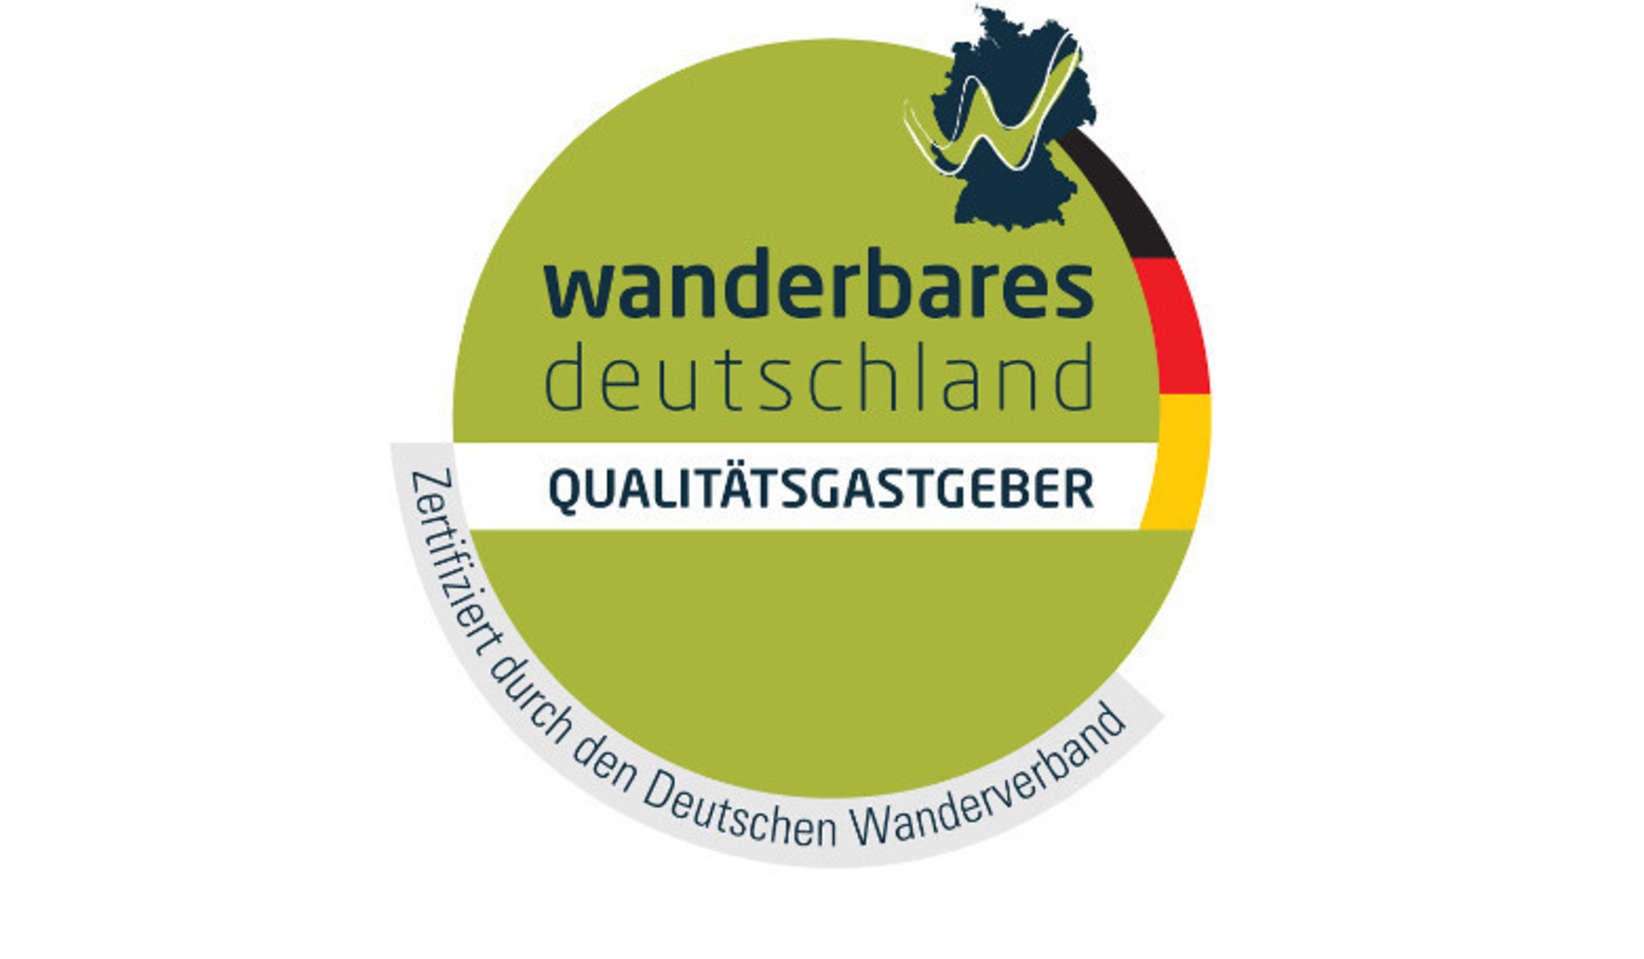 Qualitätsgastgeber Wanderbares Deutschland